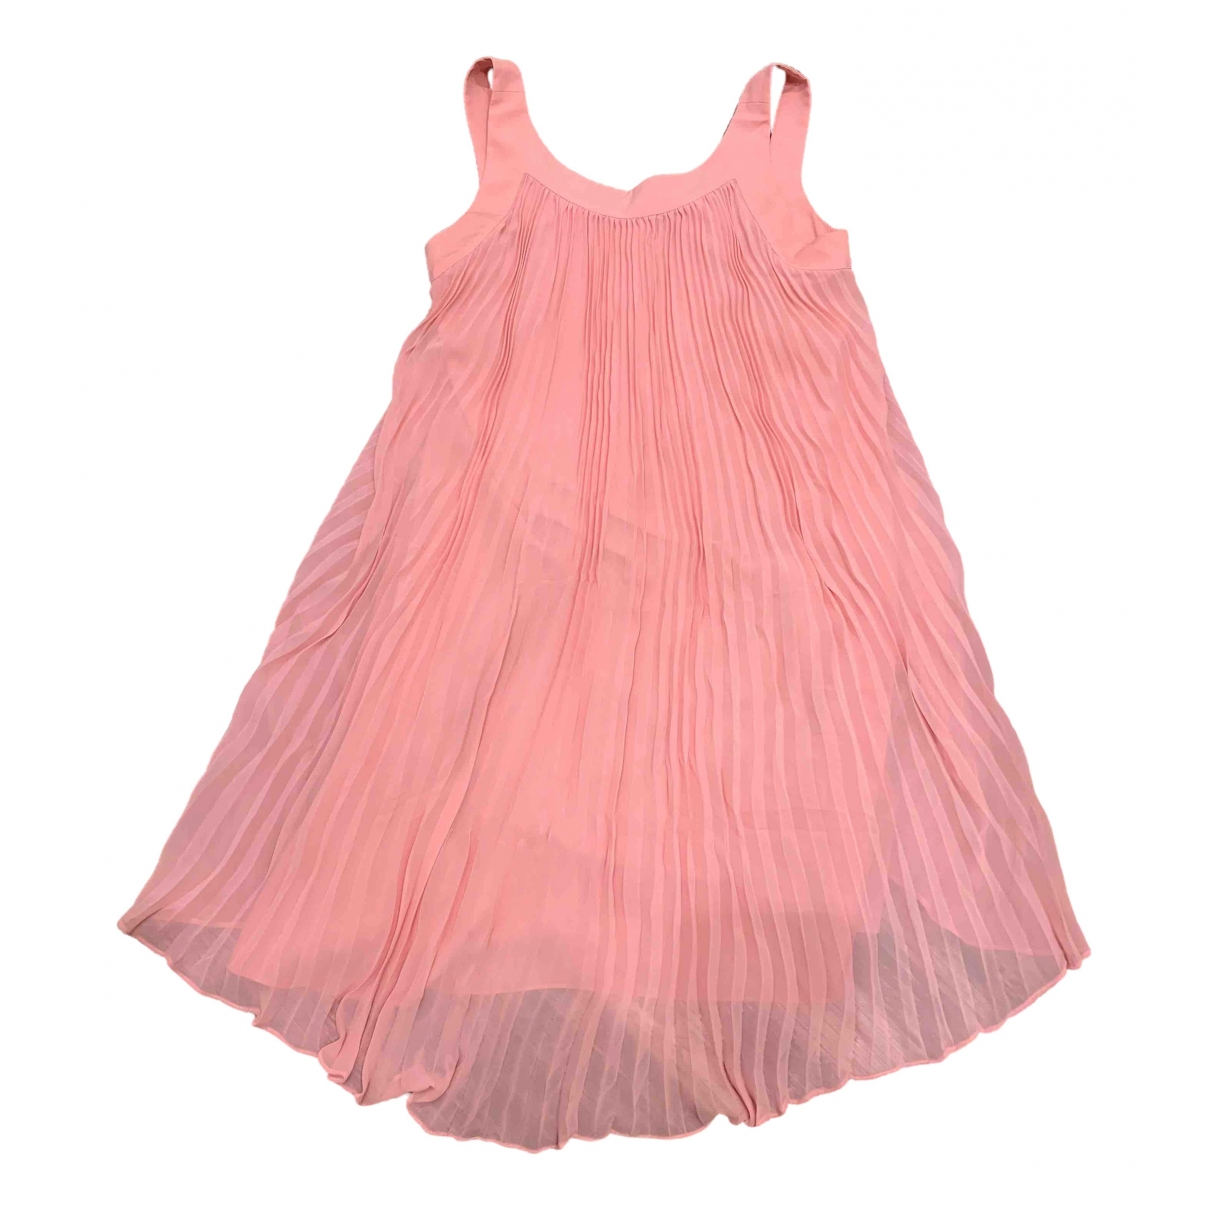 Guess \N Kleid in  Rosa Polyester